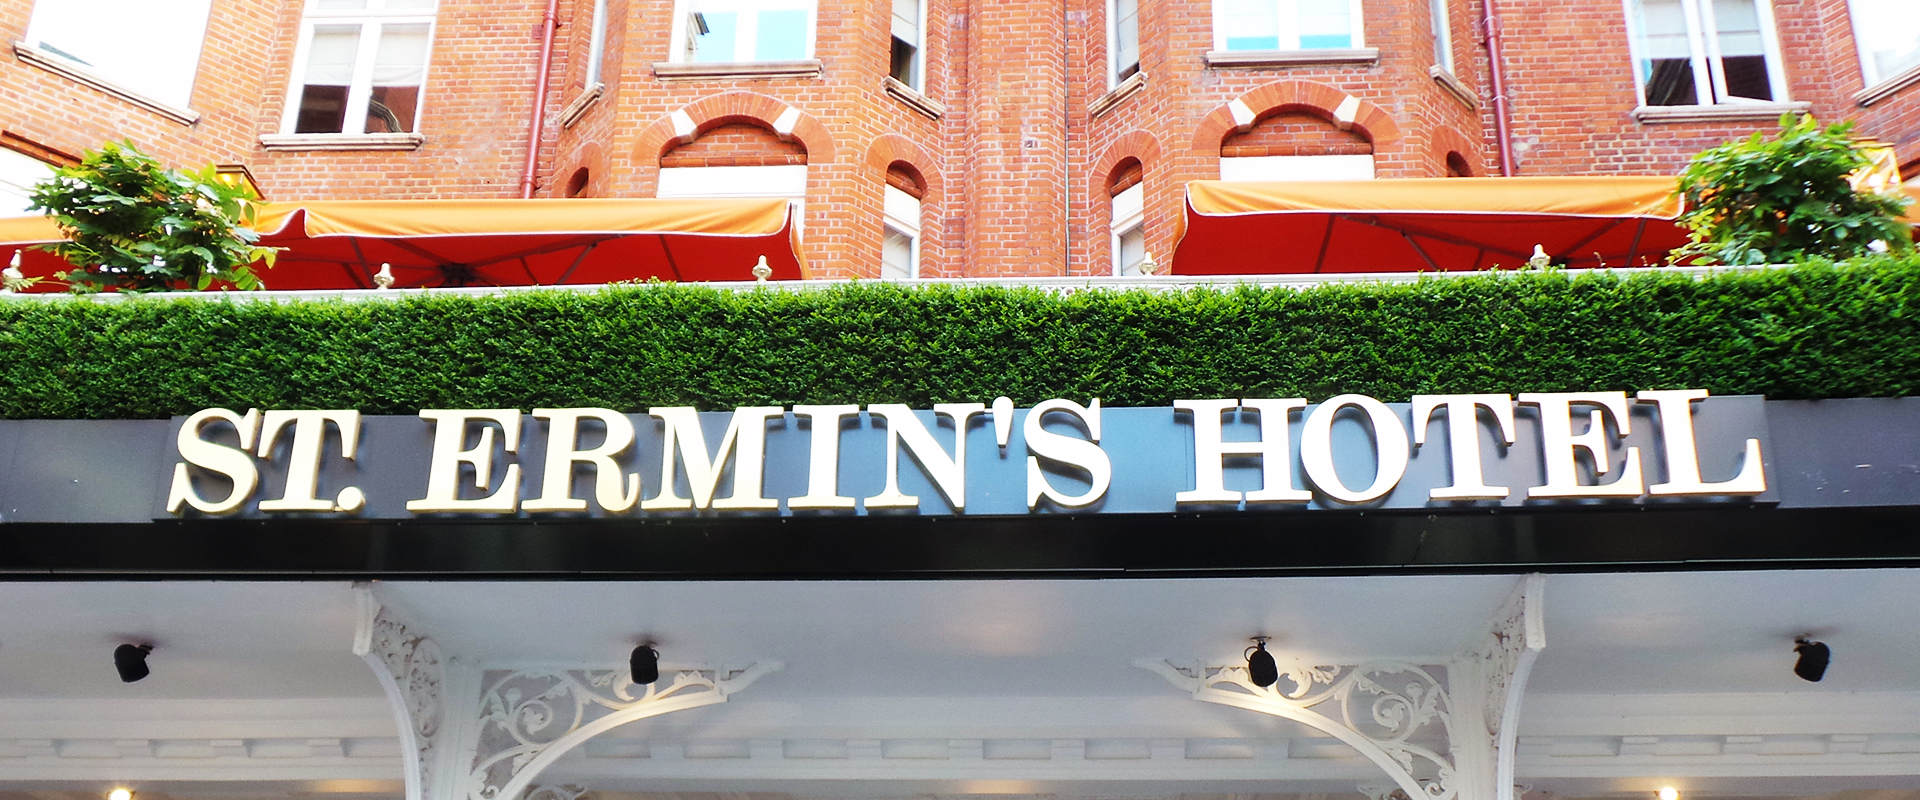 hotel-signs-london-3